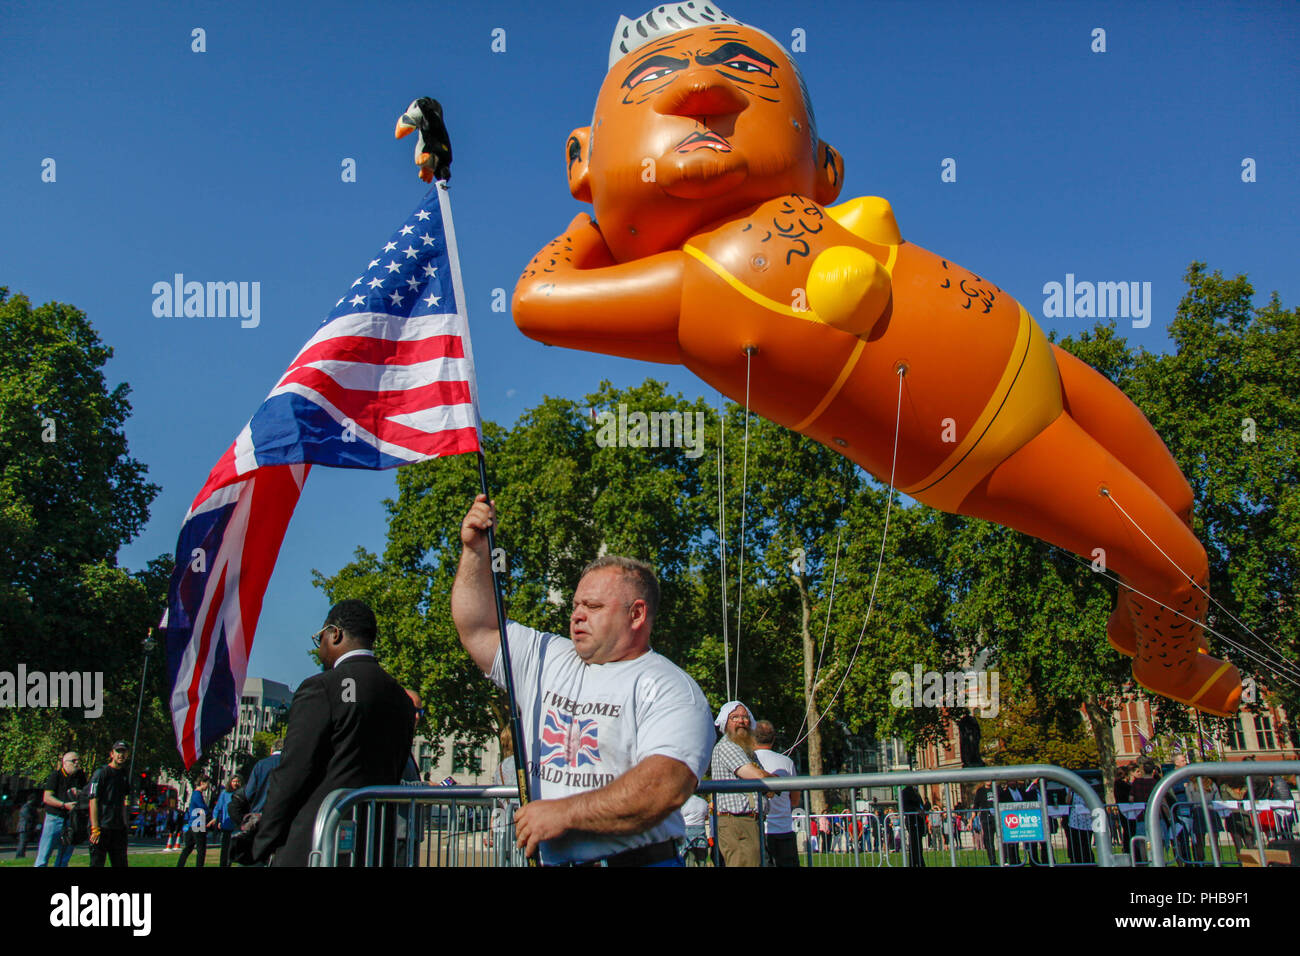 London, UK. 1st September 2018. A supporter of Donald Trump at the Sadiq Khan Balloon Protest Credit: Alex Cavendish/Alamy Live News - Stock Image